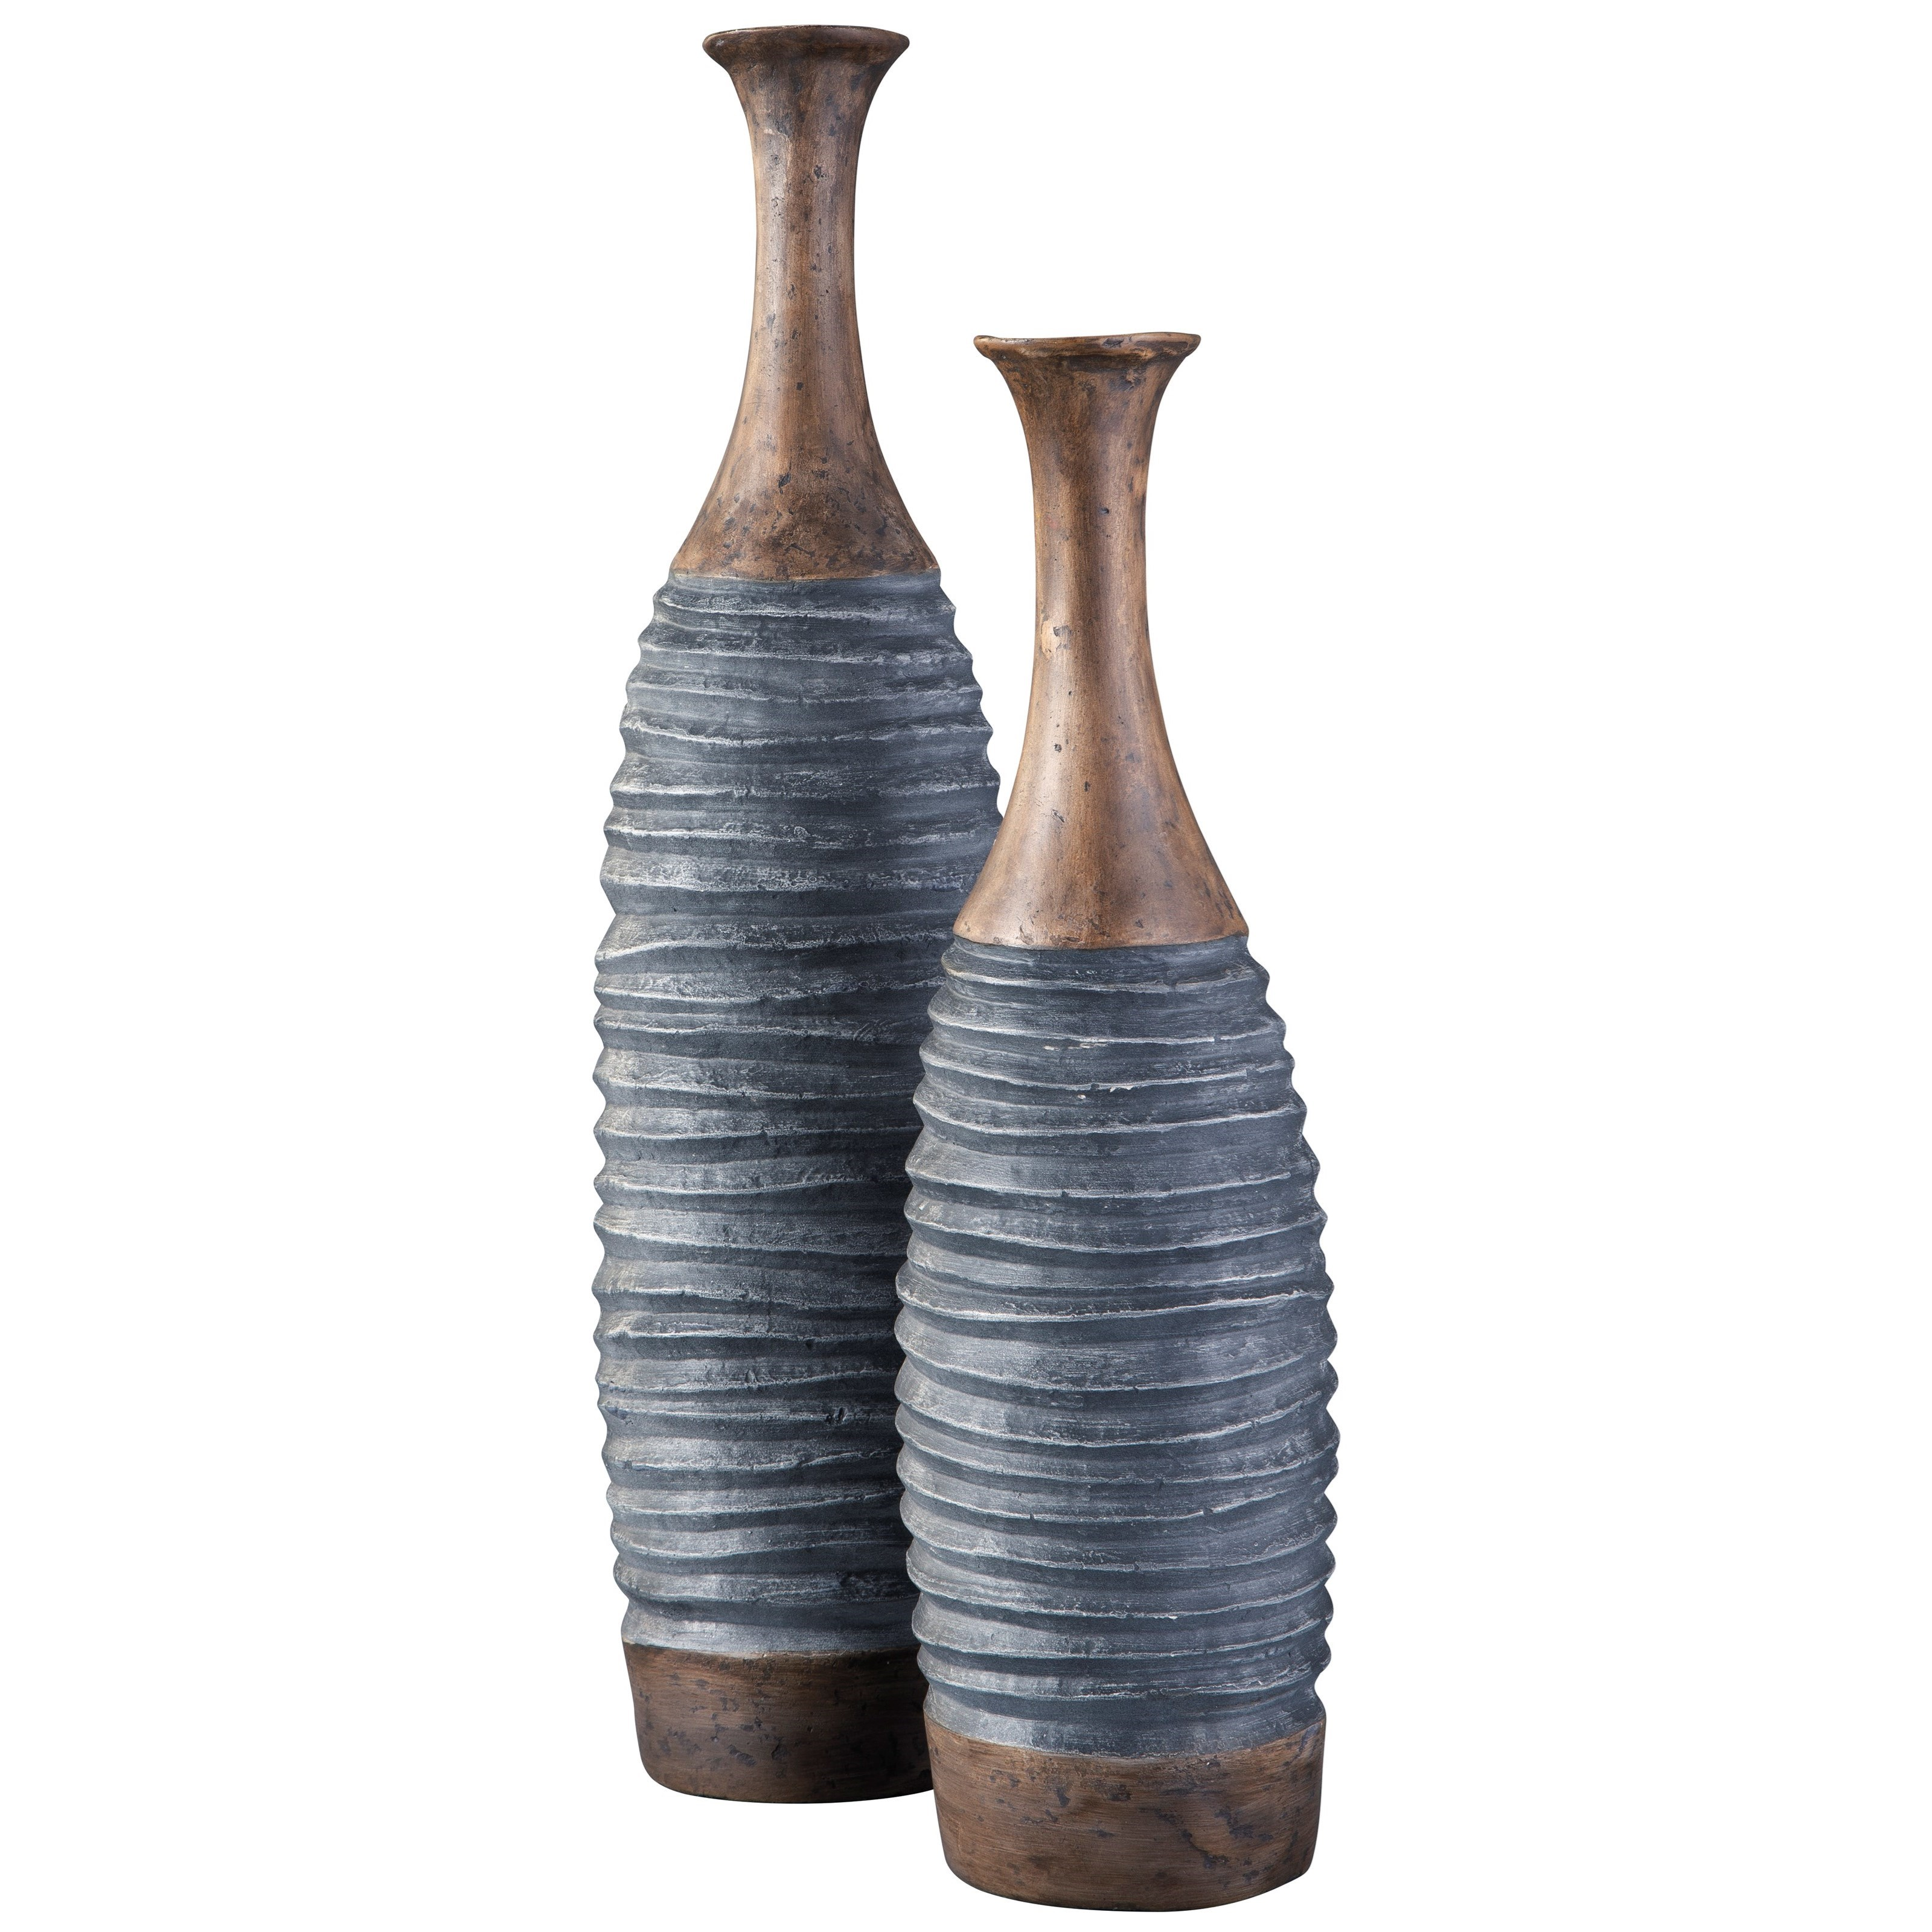 Accents Blayze Antique Gray/Brown Vase Set by Signature Design by Ashley at Rife's Home Furniture